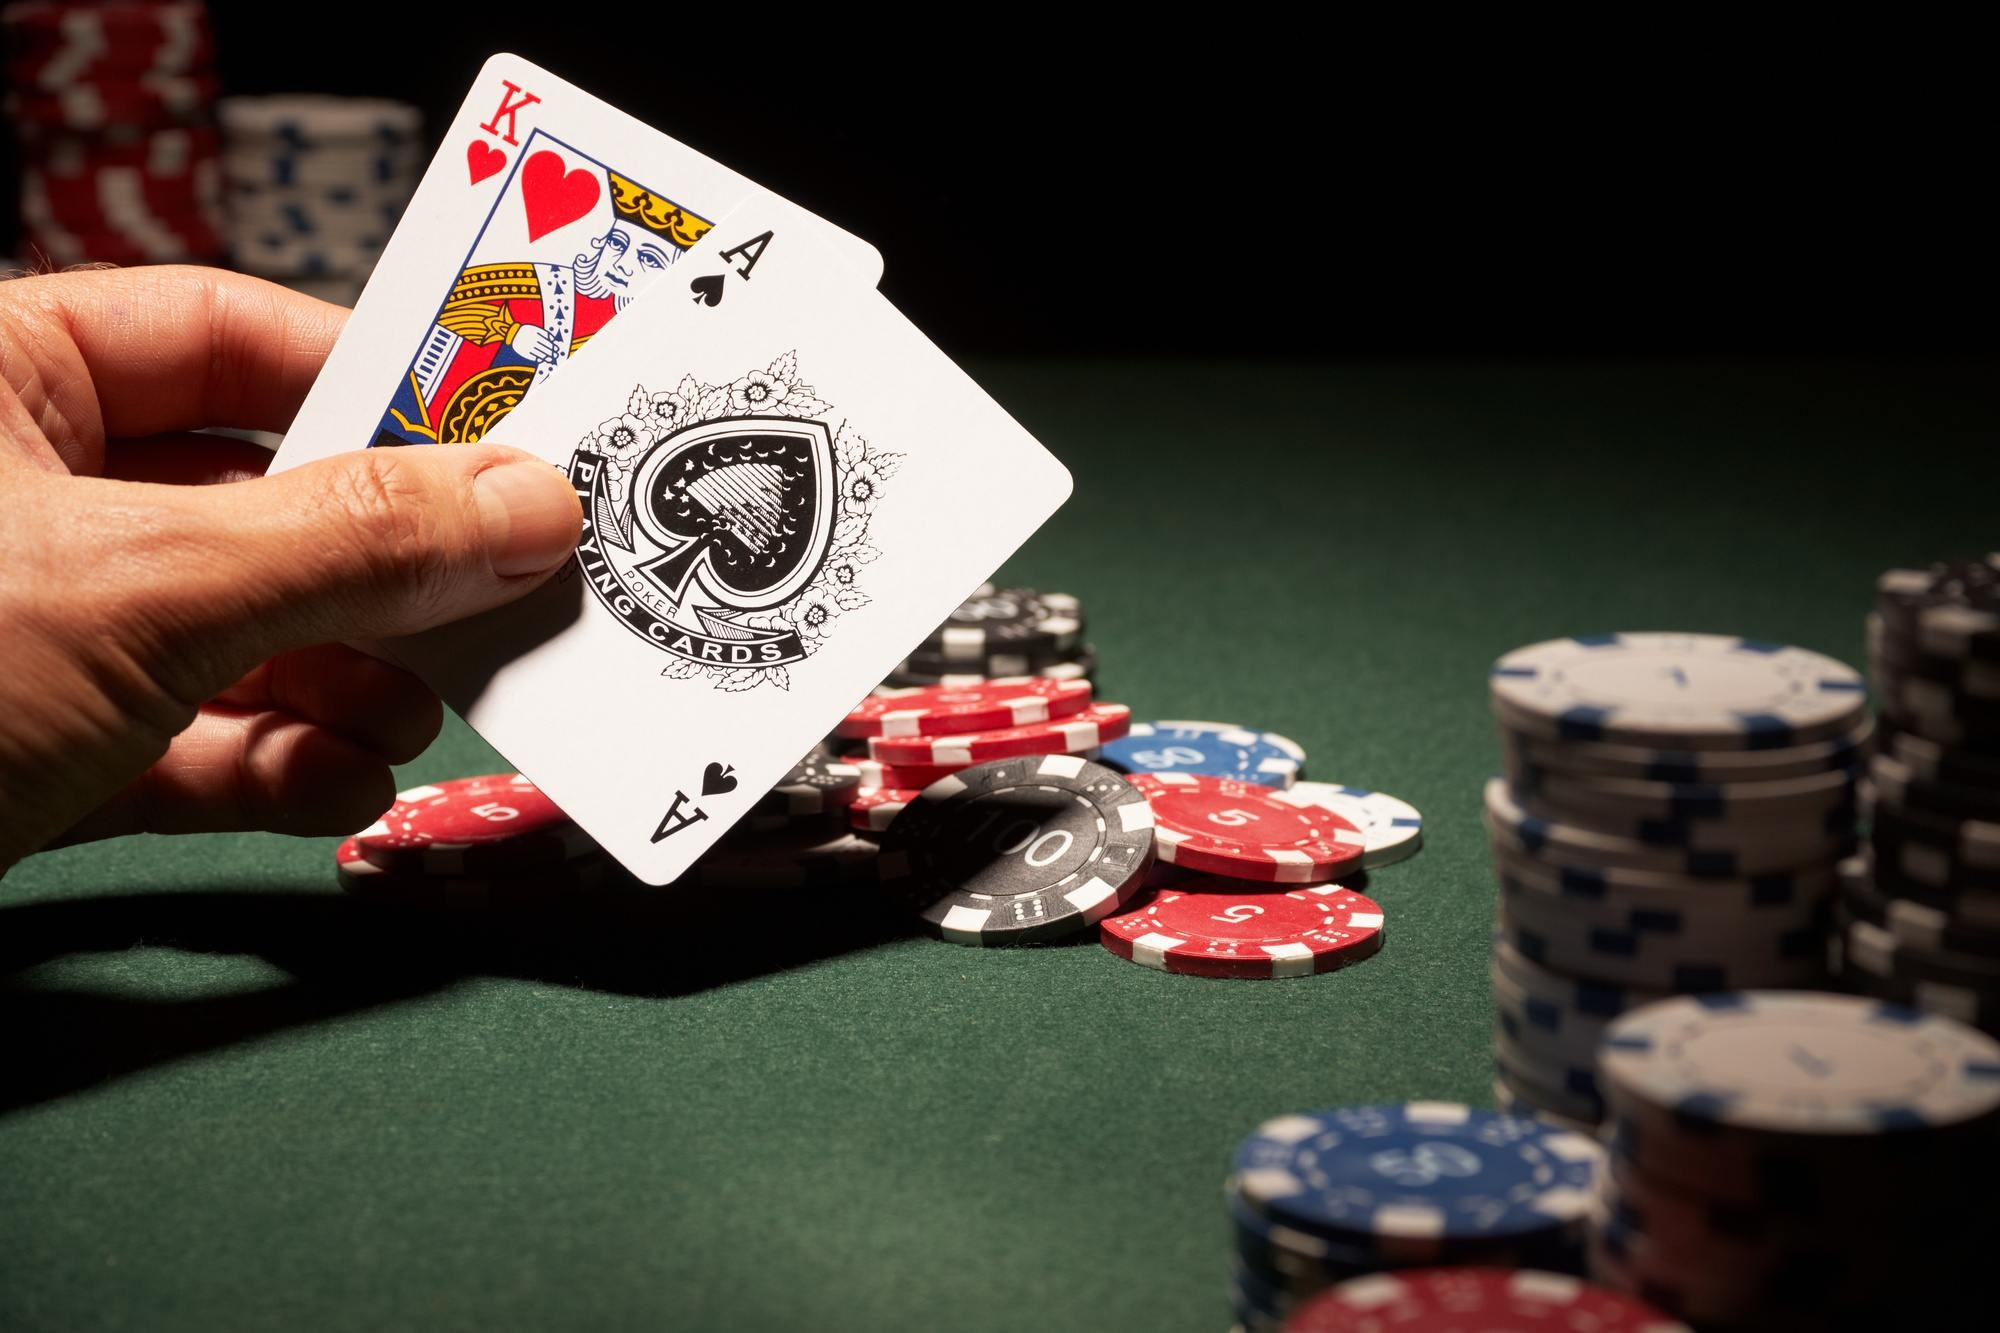 Myths about gambling and the real facts behind the myths